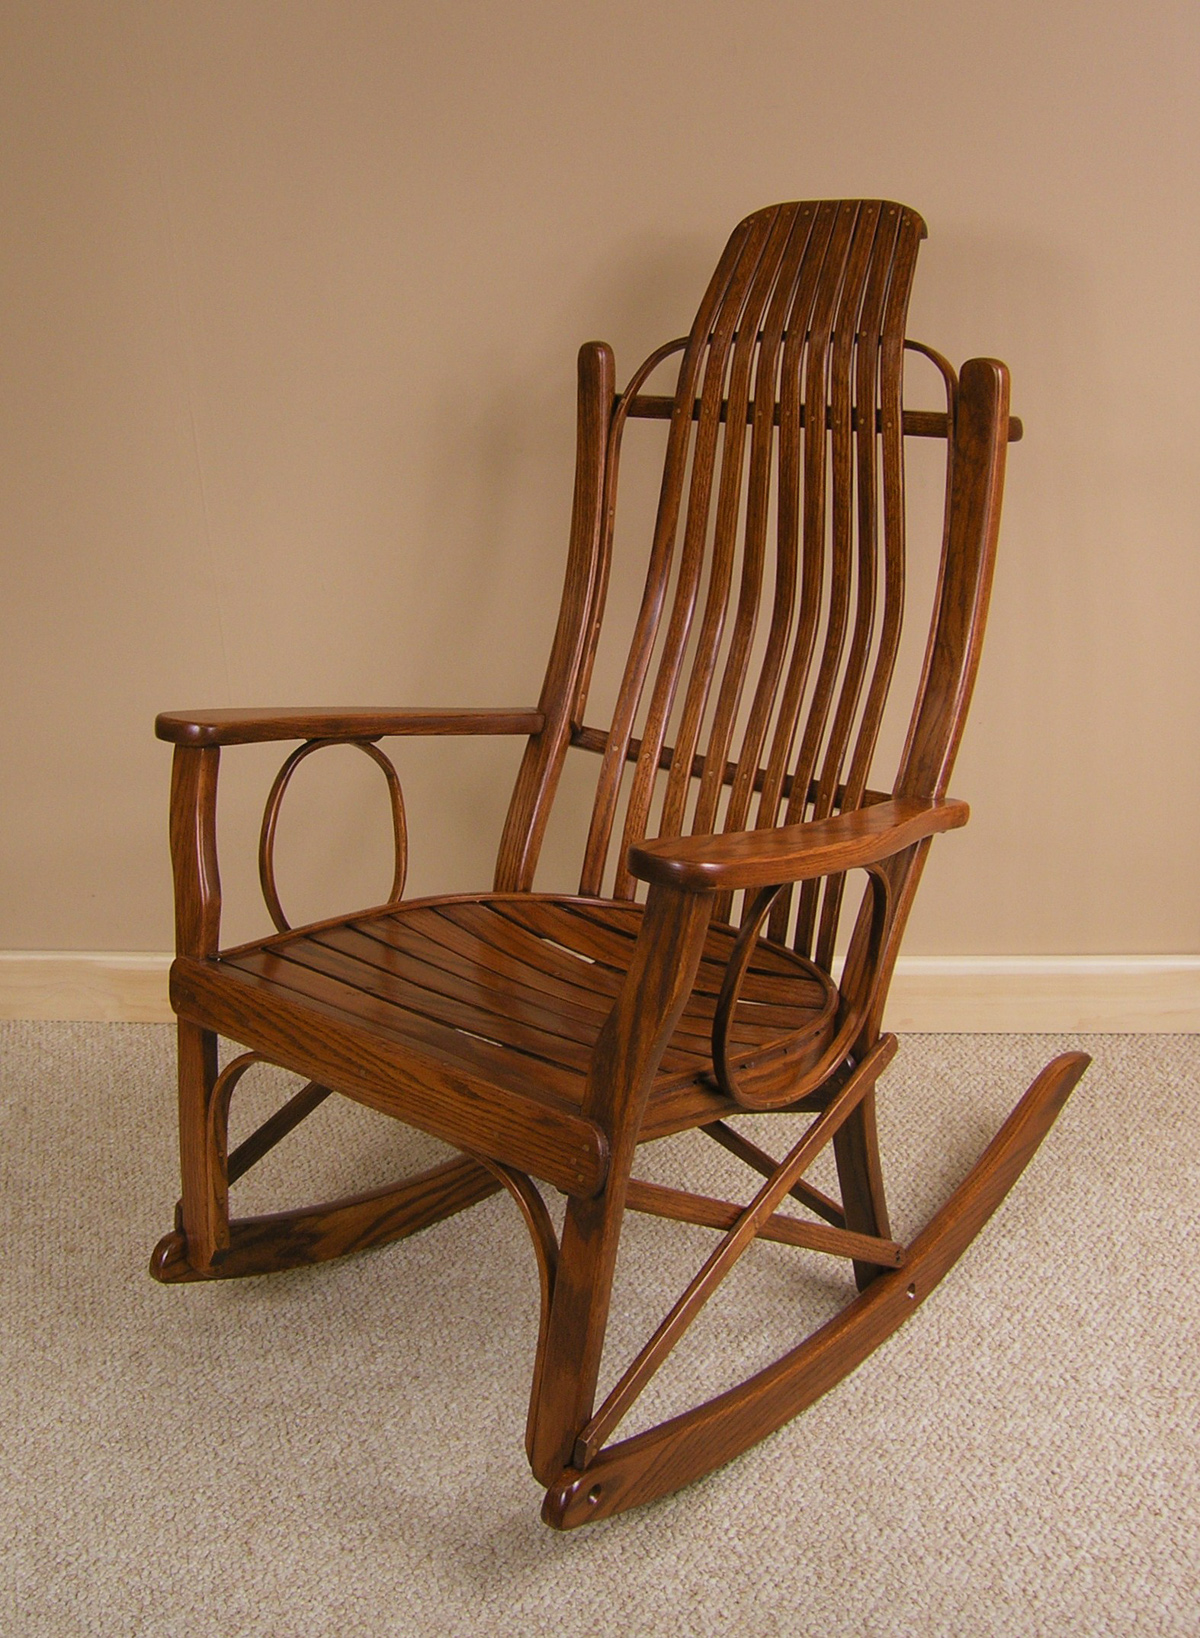 Rustic Wood Chairs Furniture Store Albany Ny Rustic Furniture And Wood Furniture